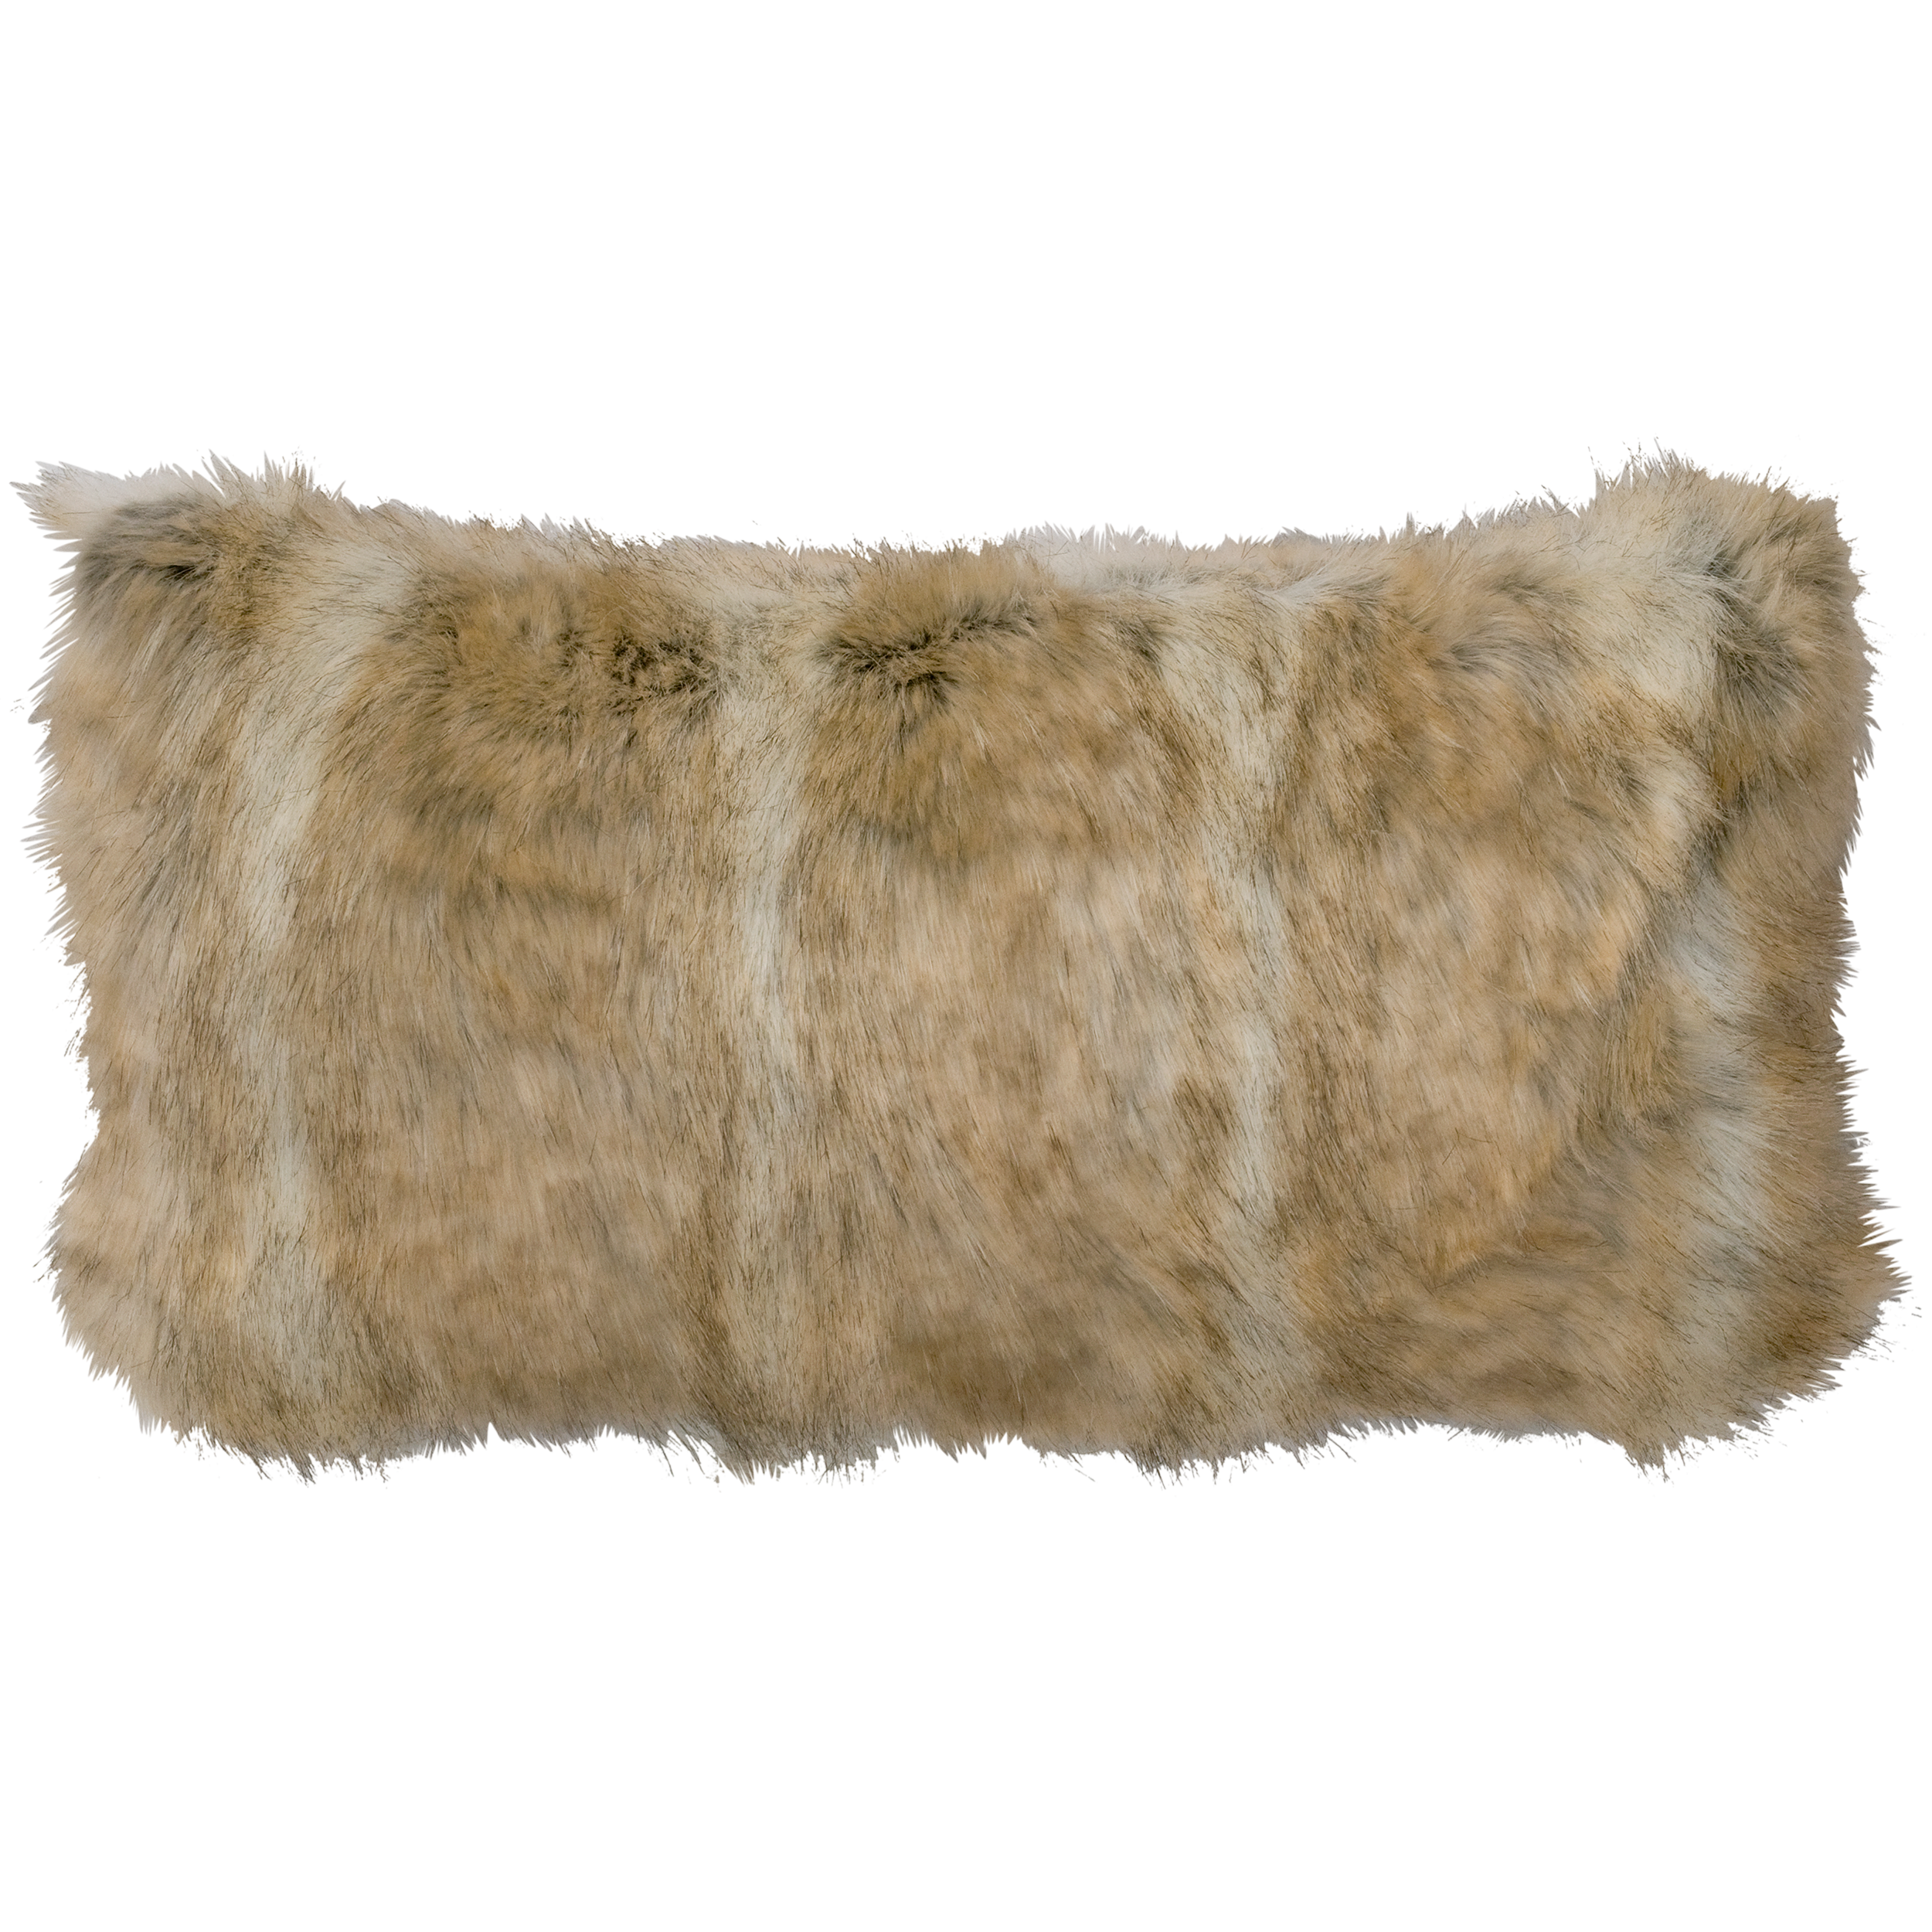 Canadian Stone Fox Faux Fur Pillow - 14